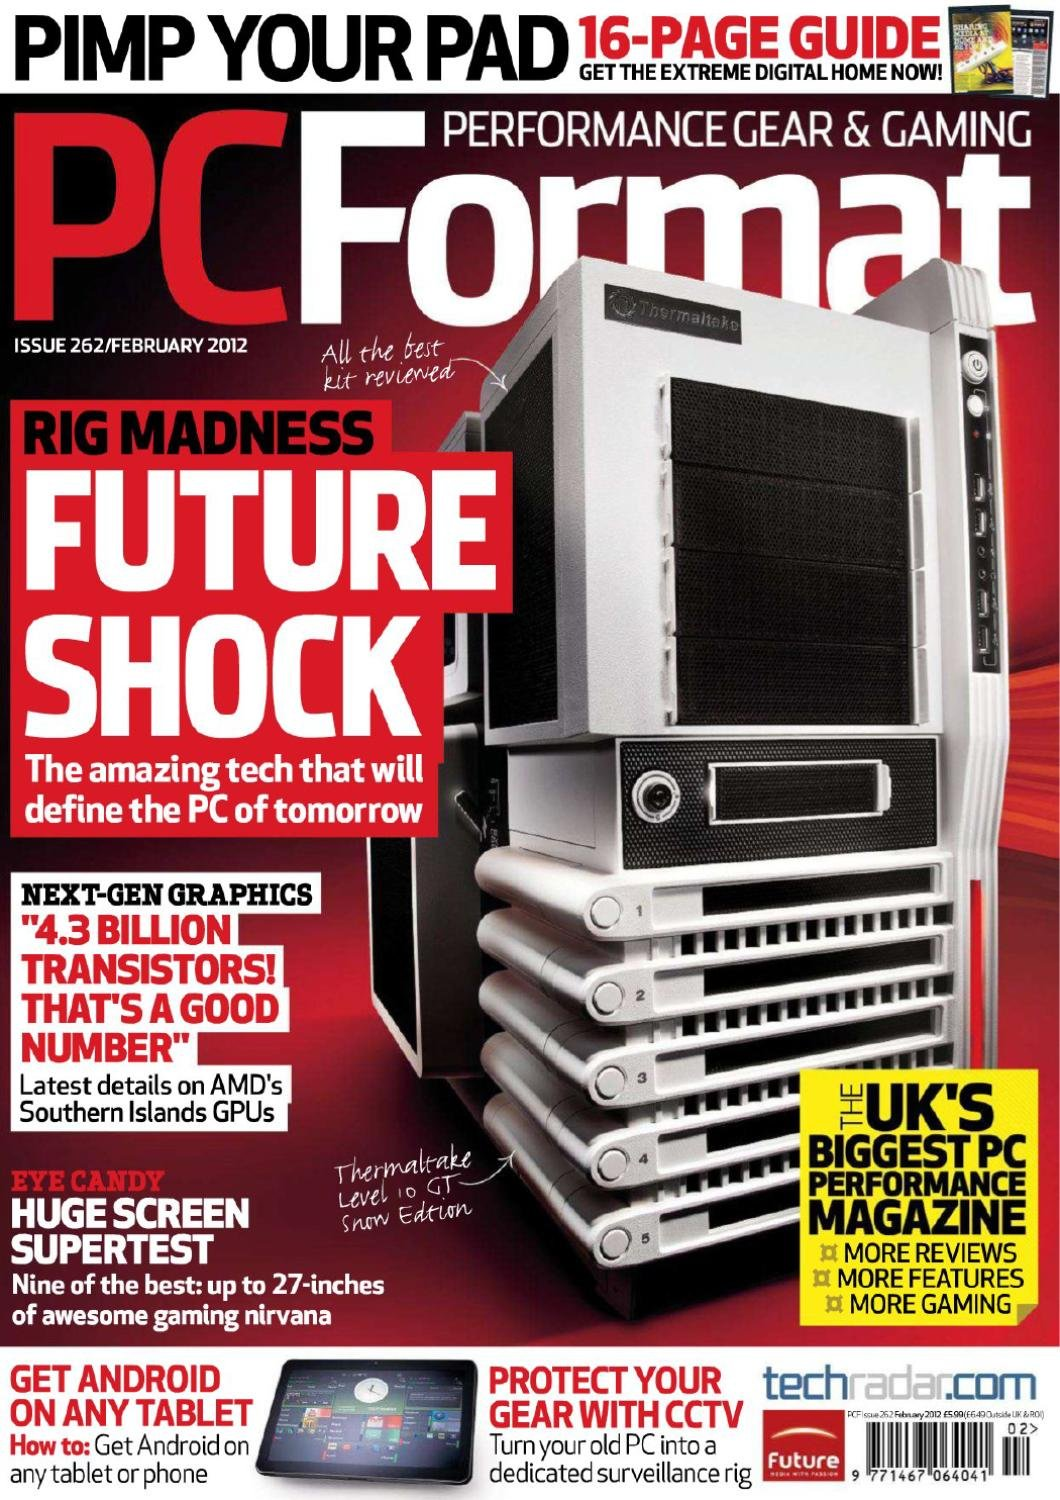 PC Format Issue 262 (February 2012)